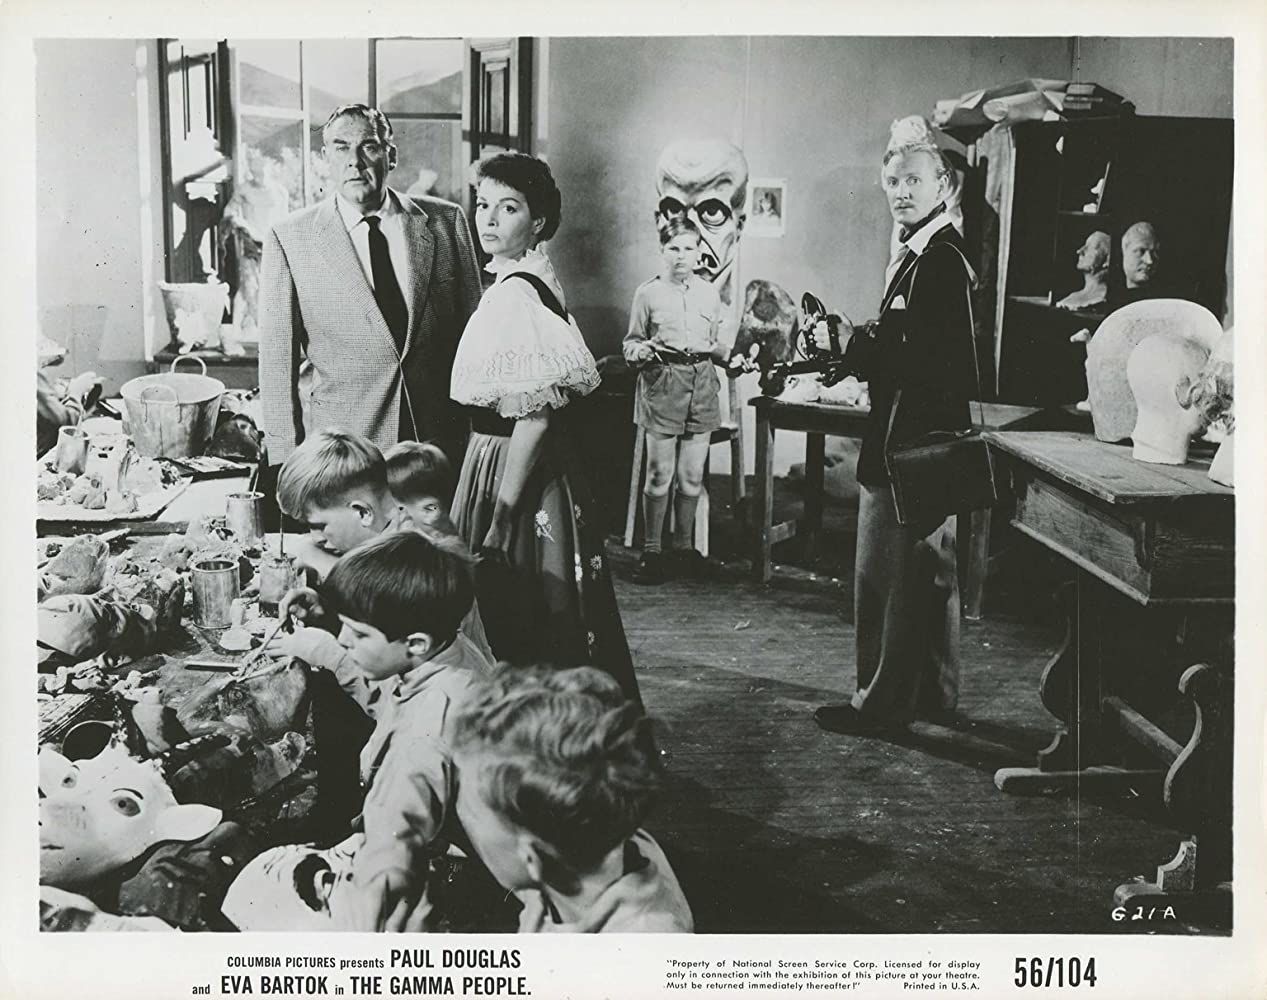 Paul Douglas and Eva Bartok in The Gamma People (1956)